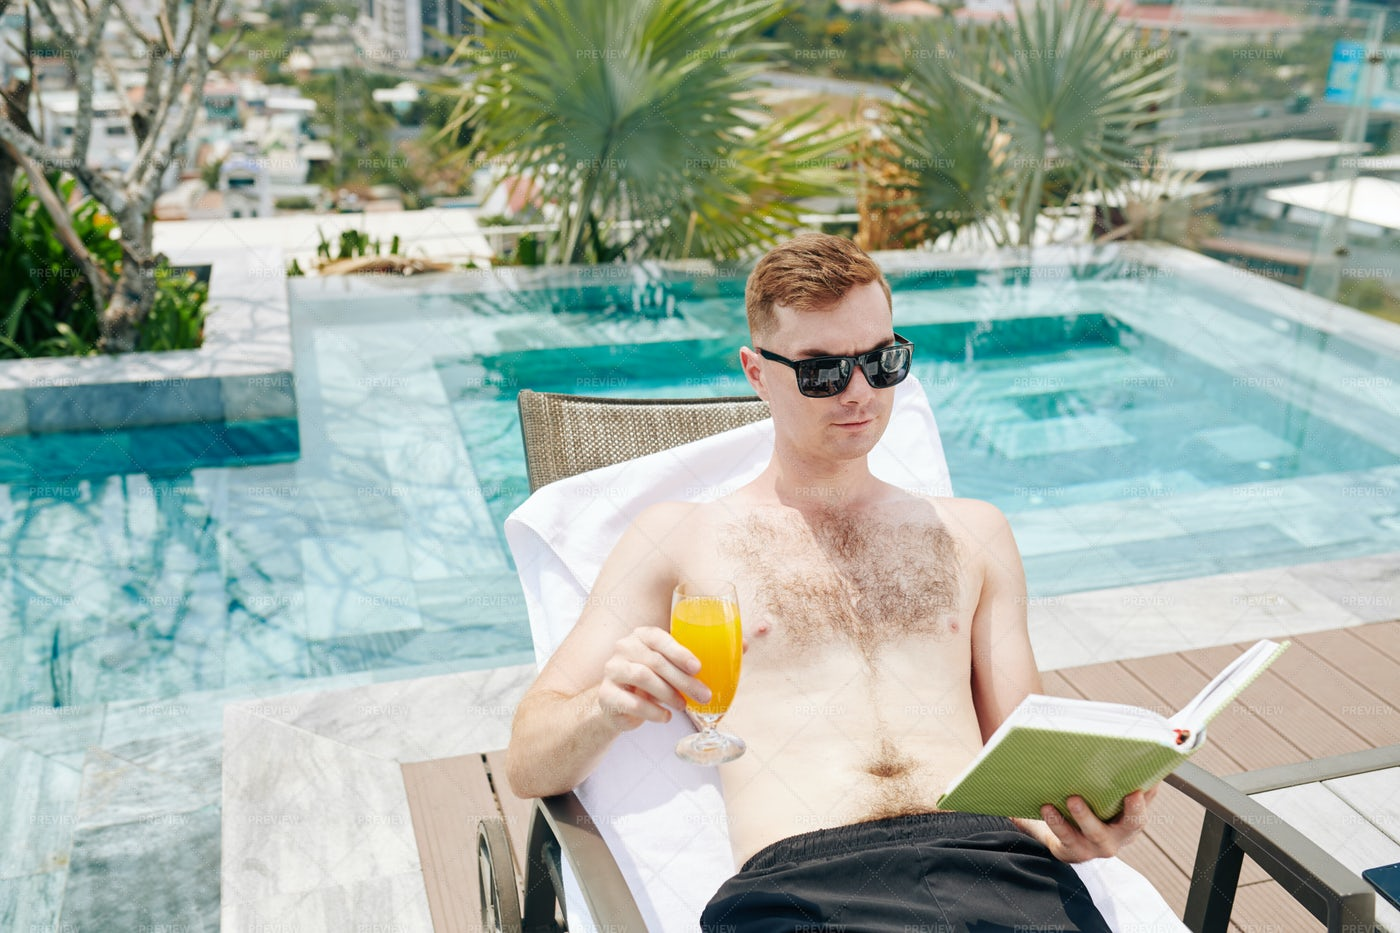 Man Reading By Pool: Stock Photos